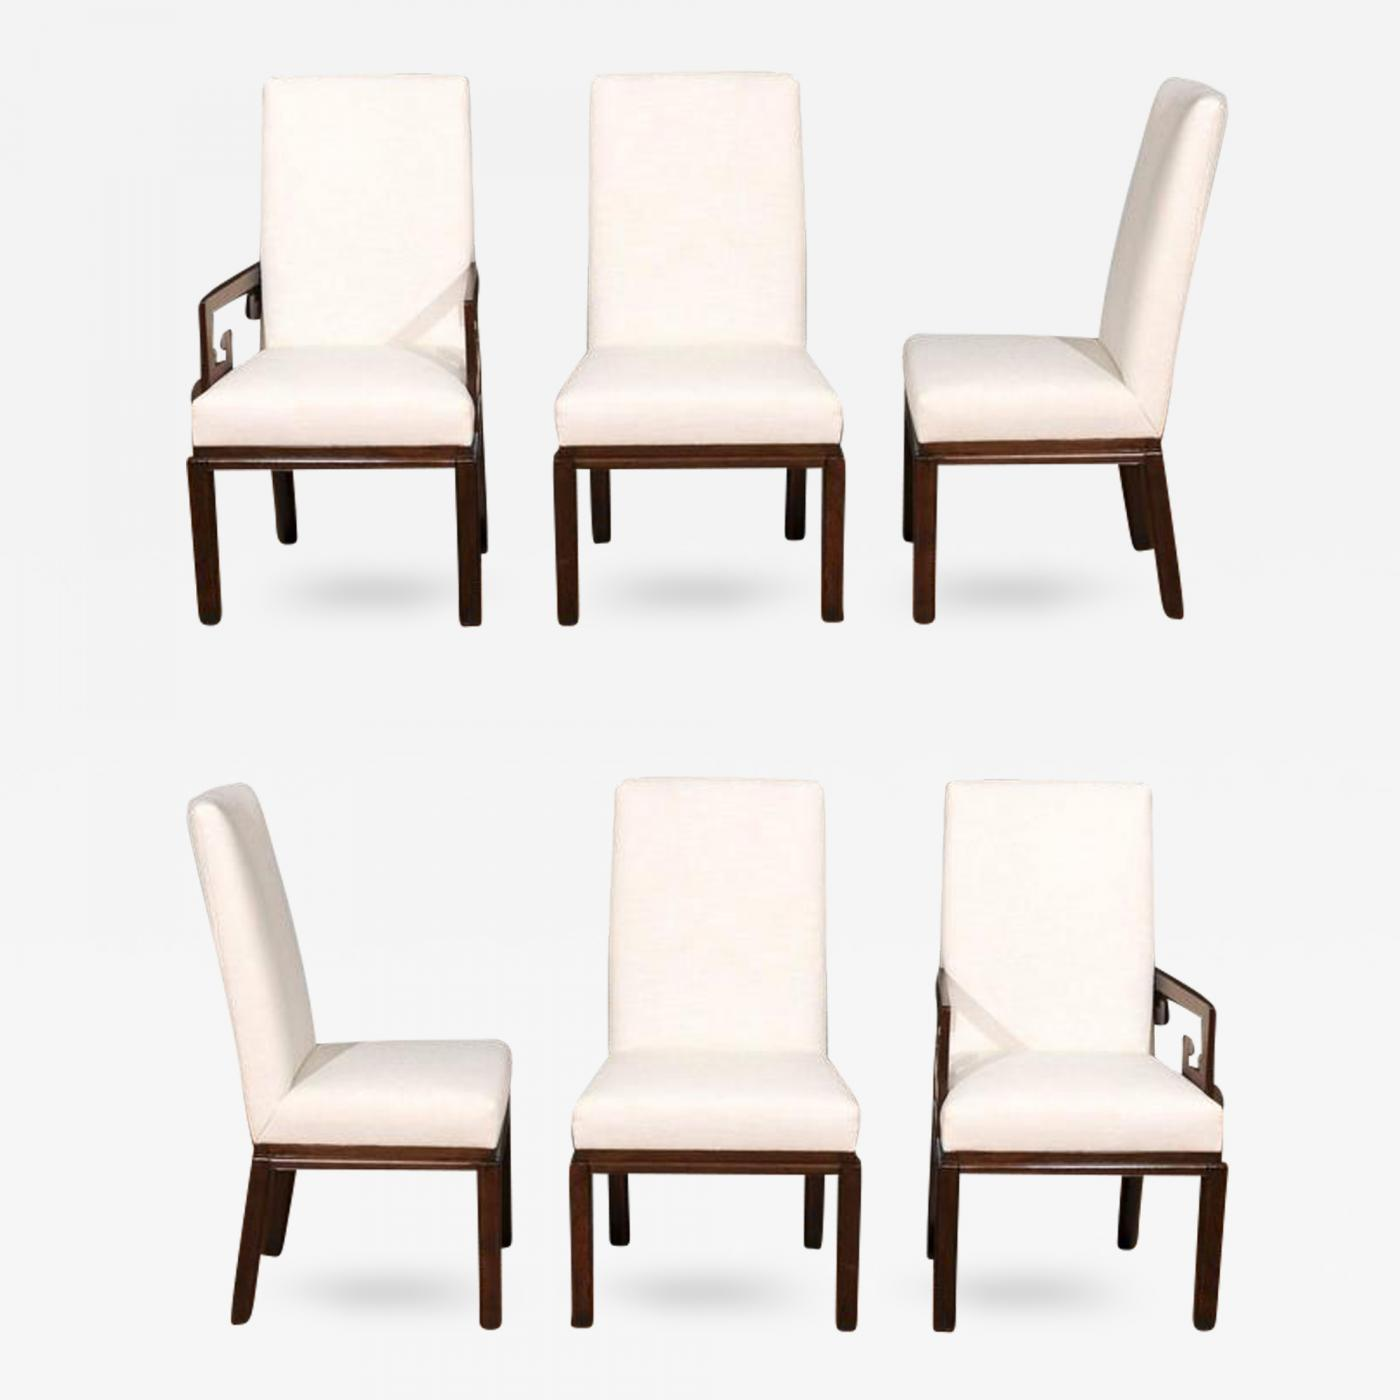 Baker furniture co rare restored set of six parsons style dining chairs by baker